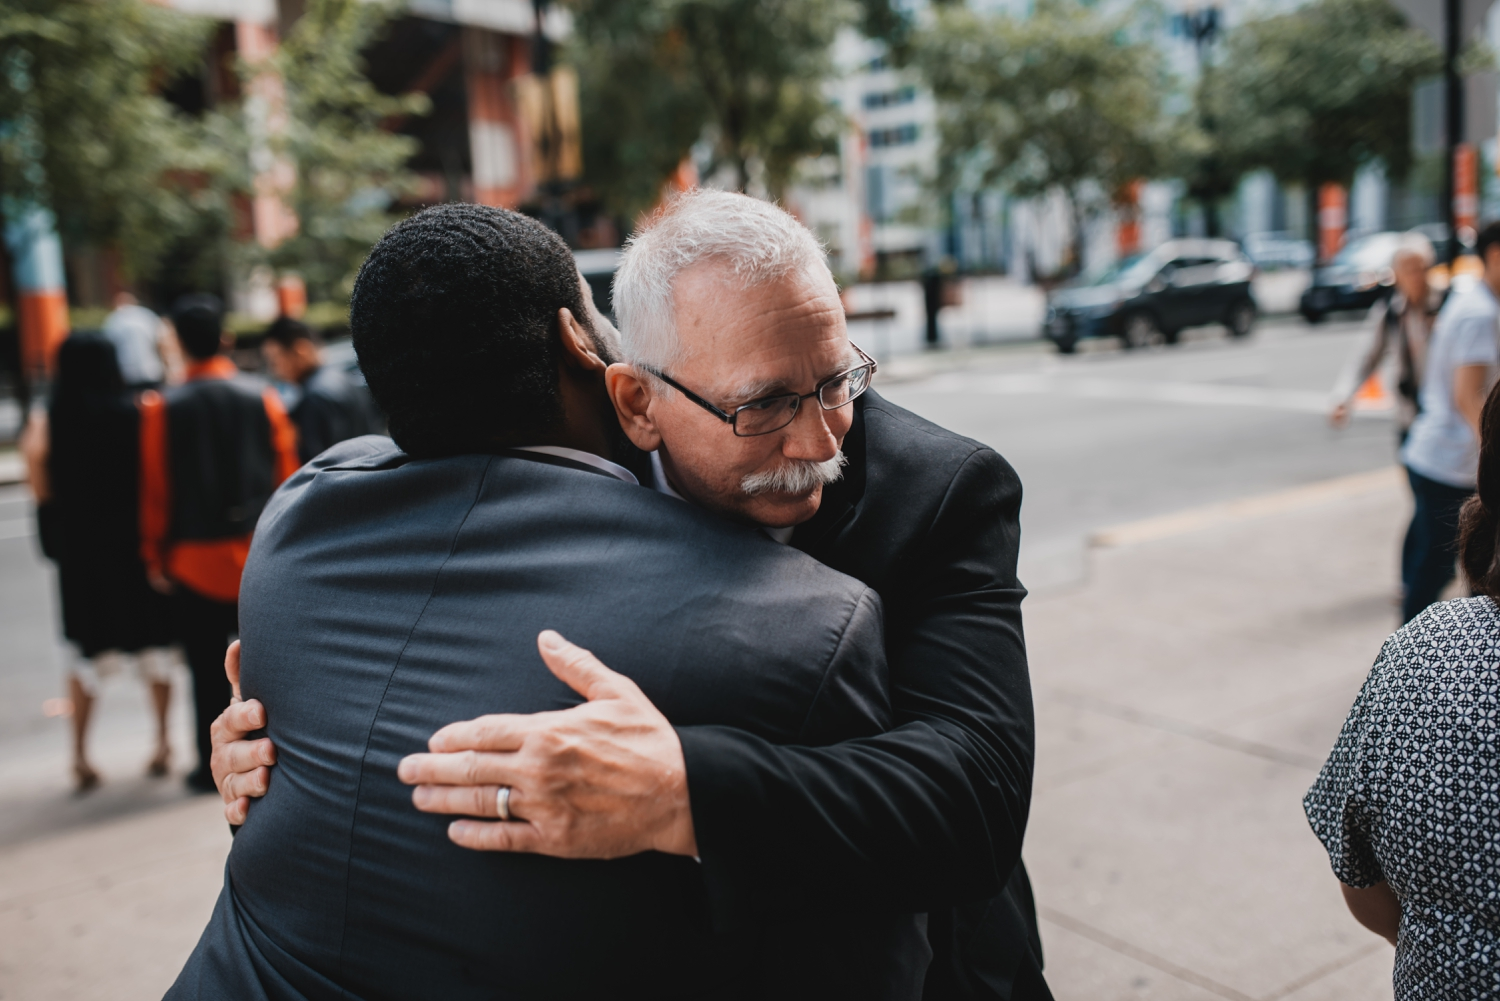 Chicago Elopement photographer - The Adamkovi, father hugging